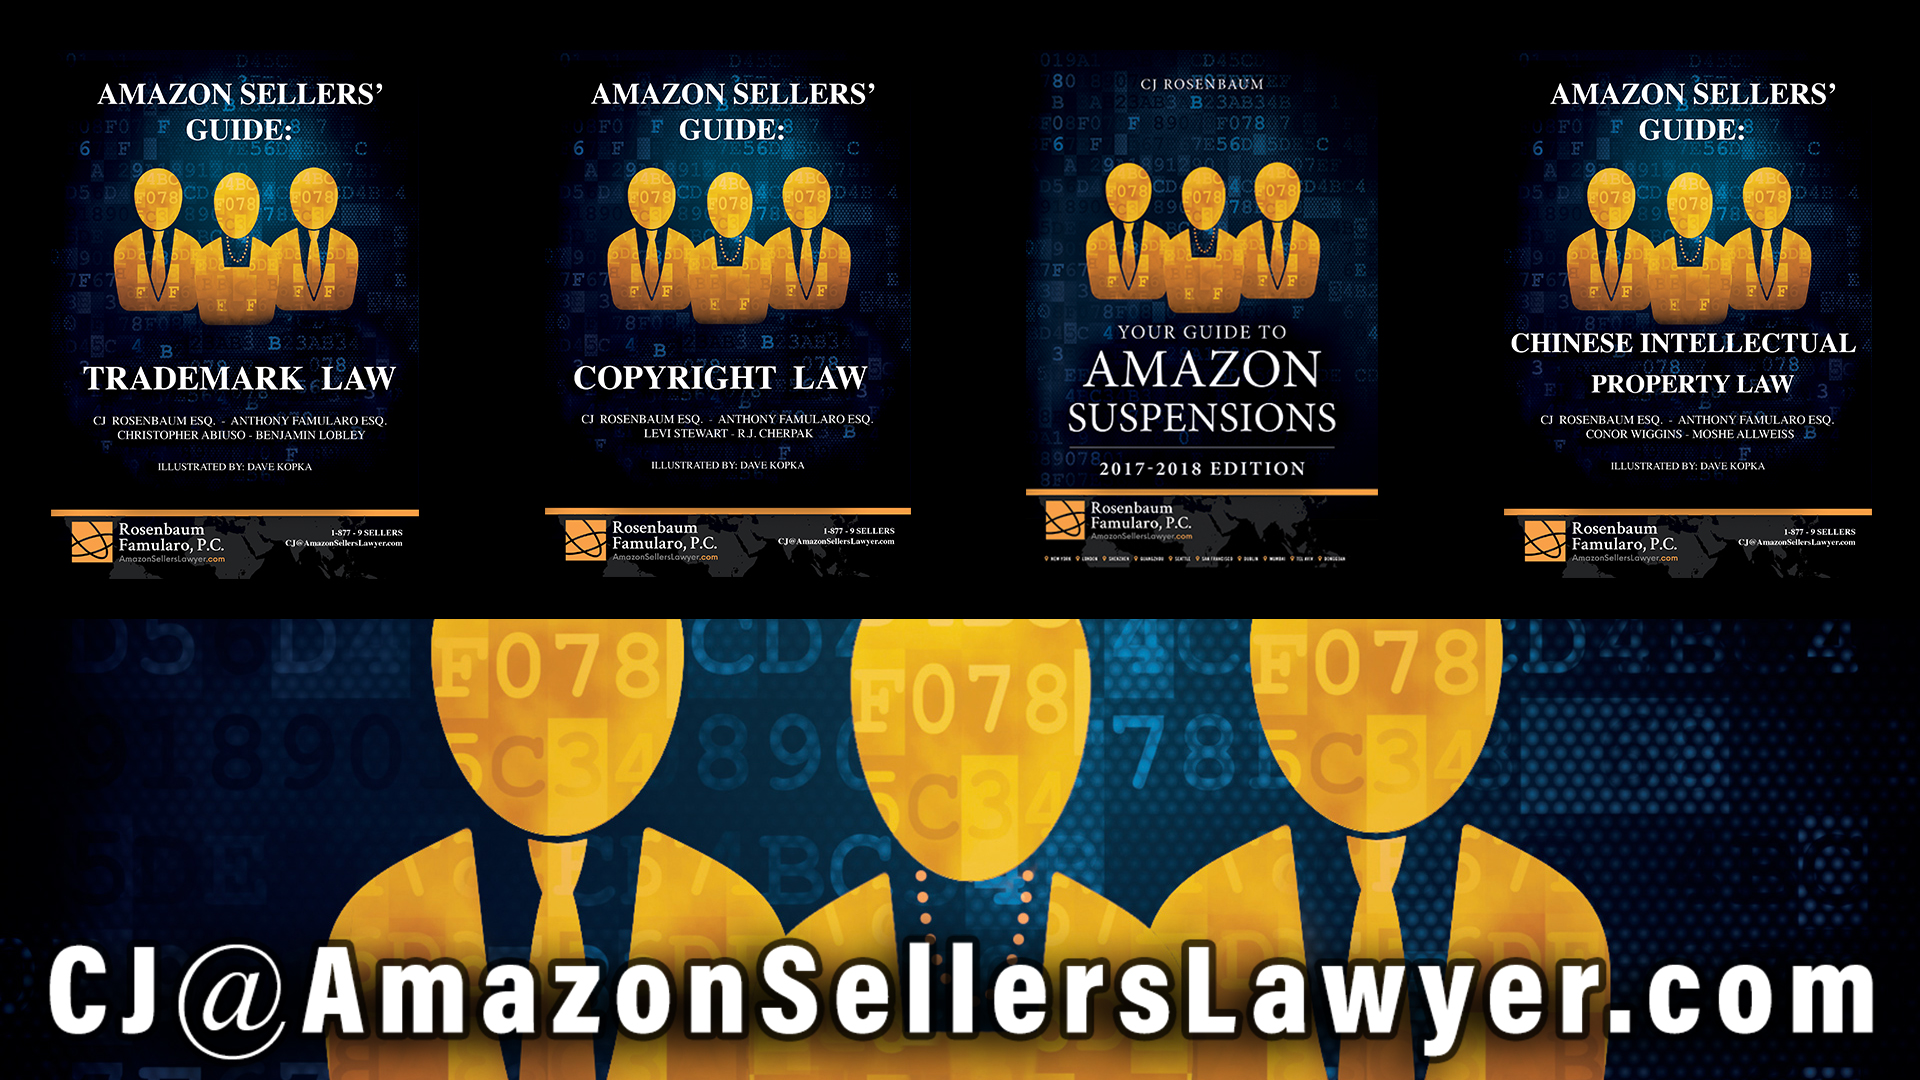 Amazon Sellers' Lawyer Books